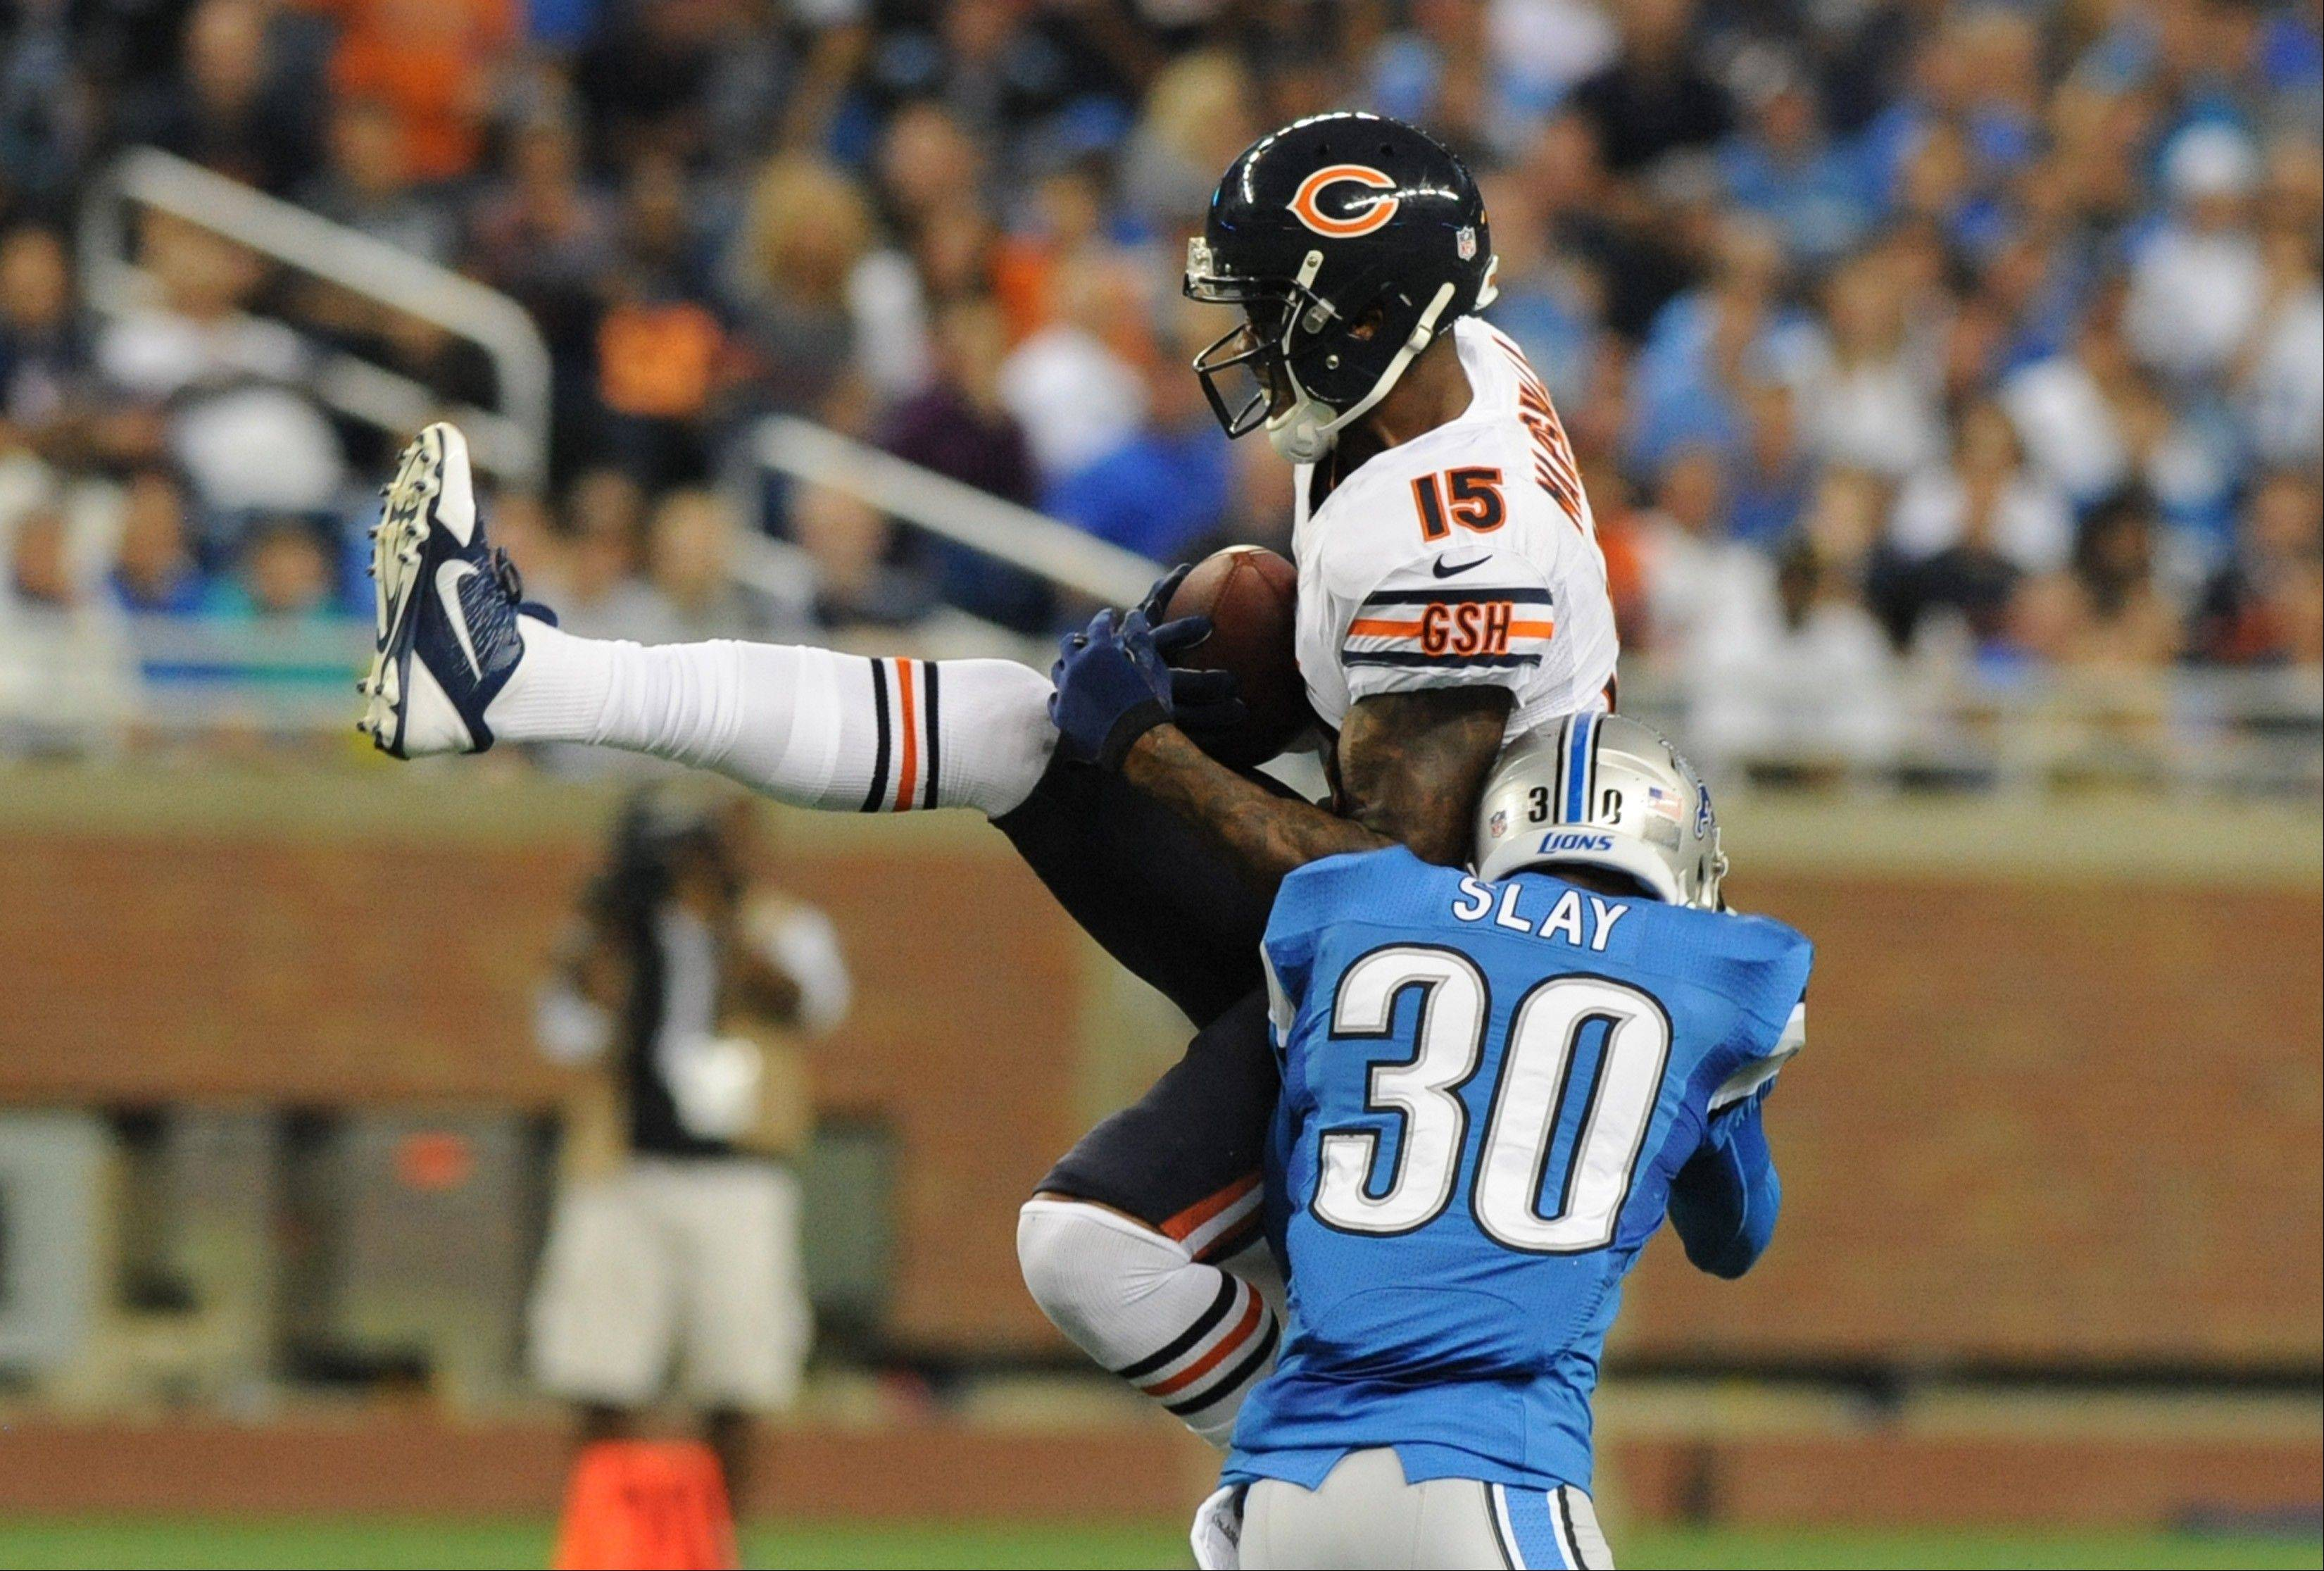 Chicago Bears wide receiver Brandon Marshall (15) is stopped by Detroit Lions cornerback Darius Slay (30) after a 24-yard reception during the third quarter.